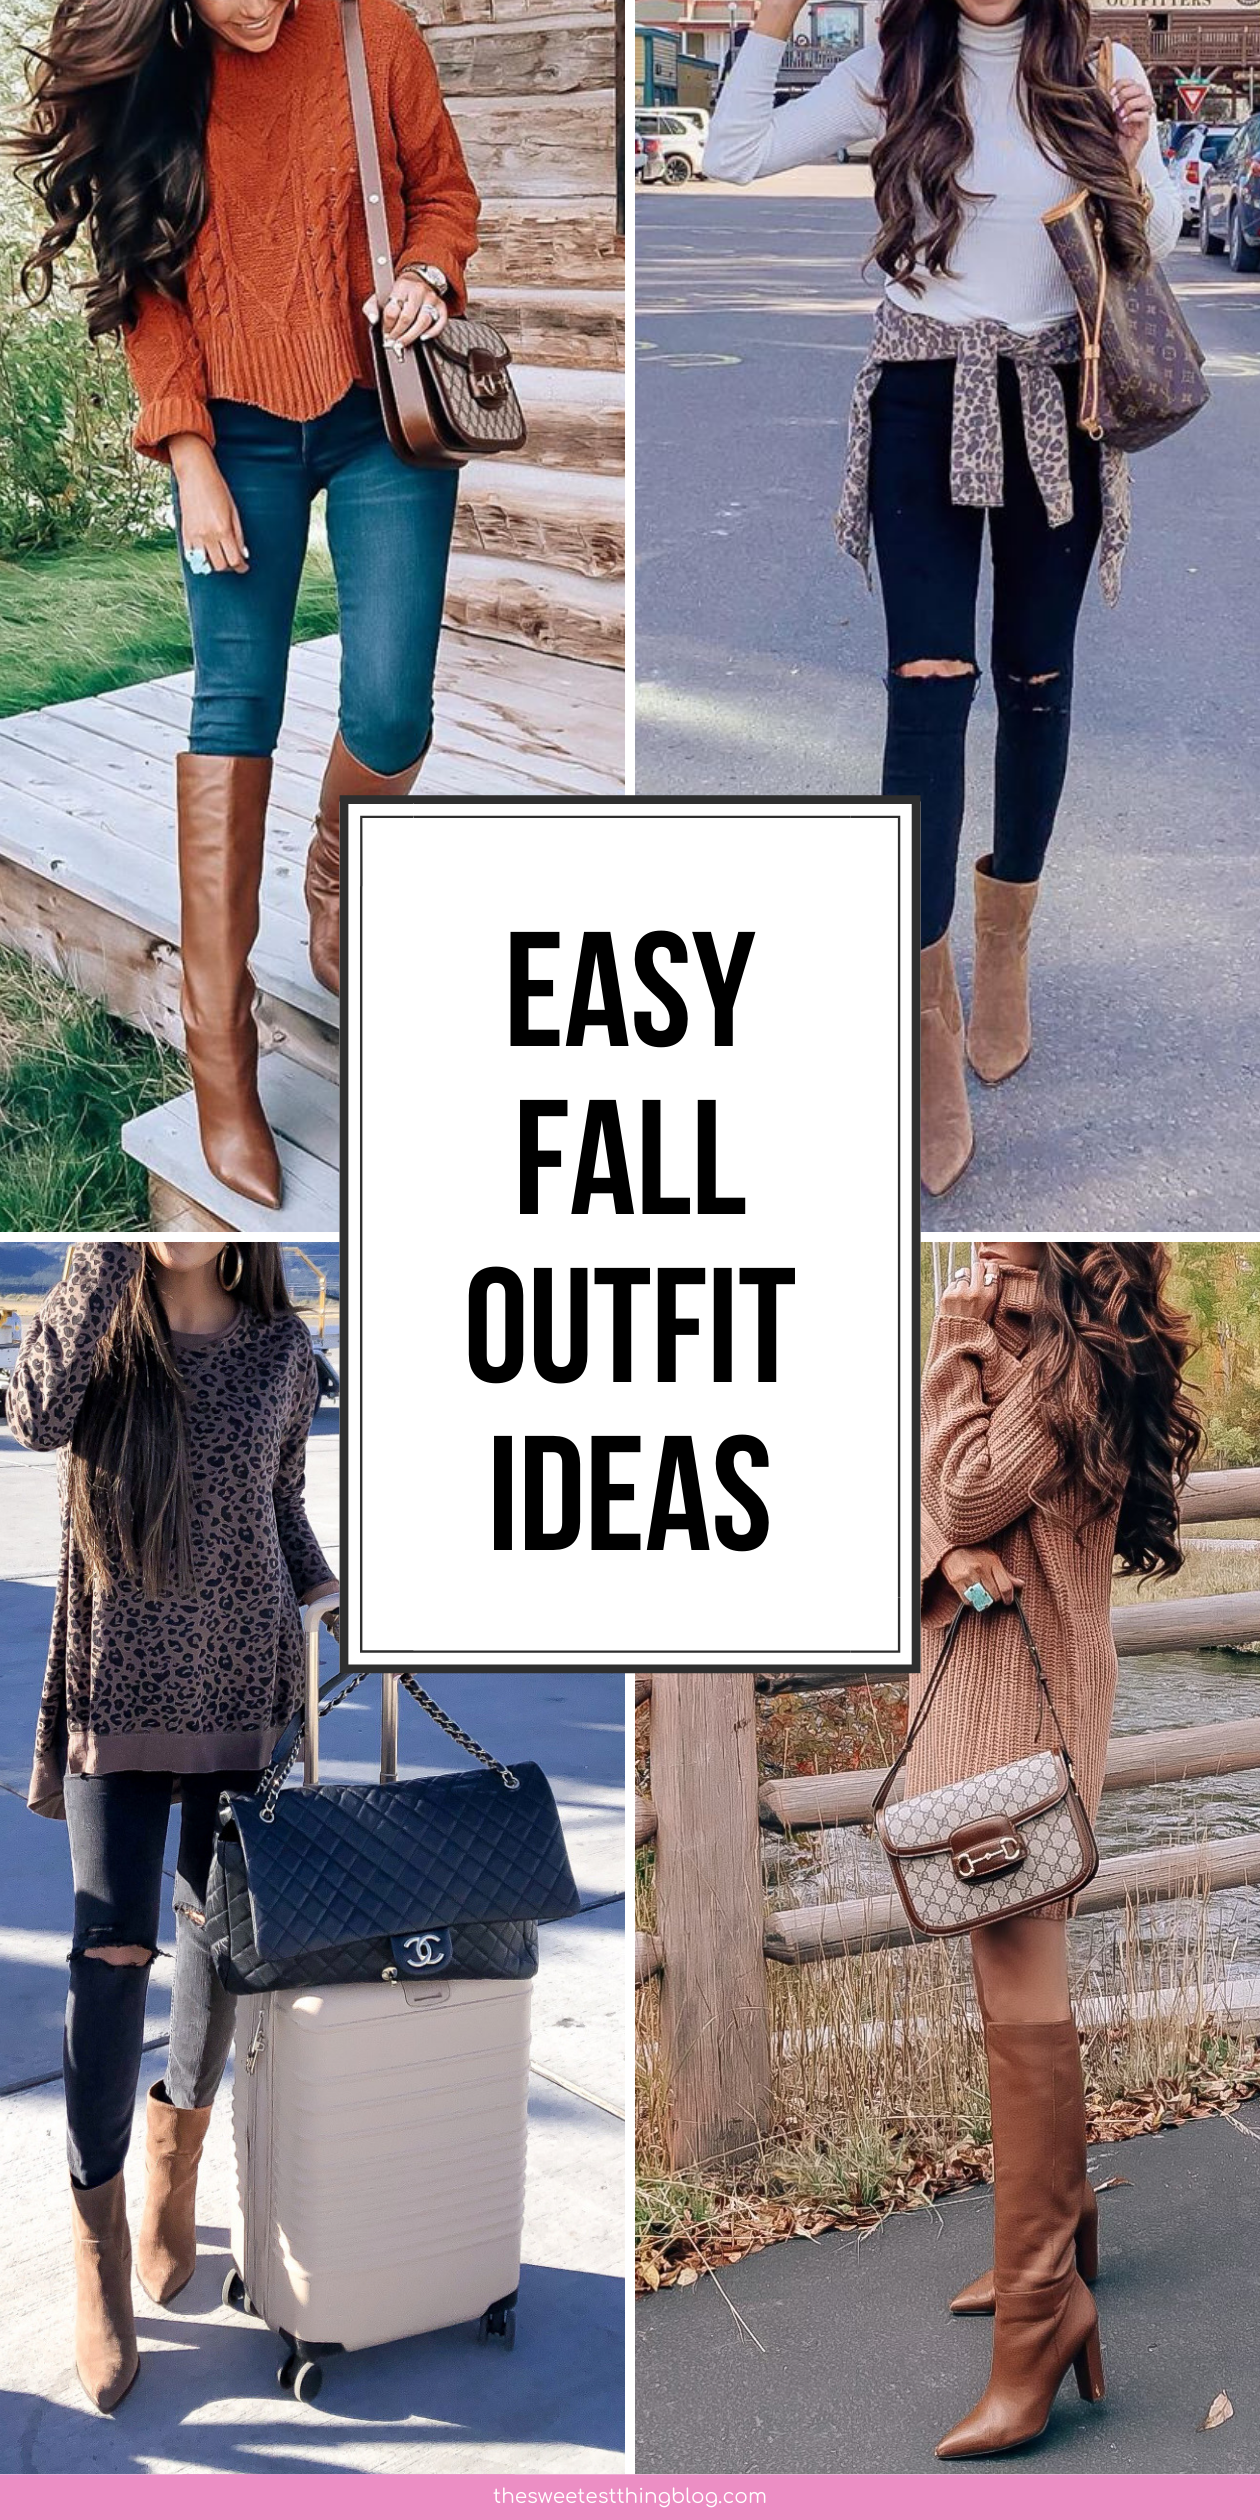 11 Easy Fall Outfit Ideas For Women Jackson Hole Trip Outfits Recap Shop My Looks Emily Gemma The S Simple Fall Outfits Stylish Winter Outfits Fall Outfits